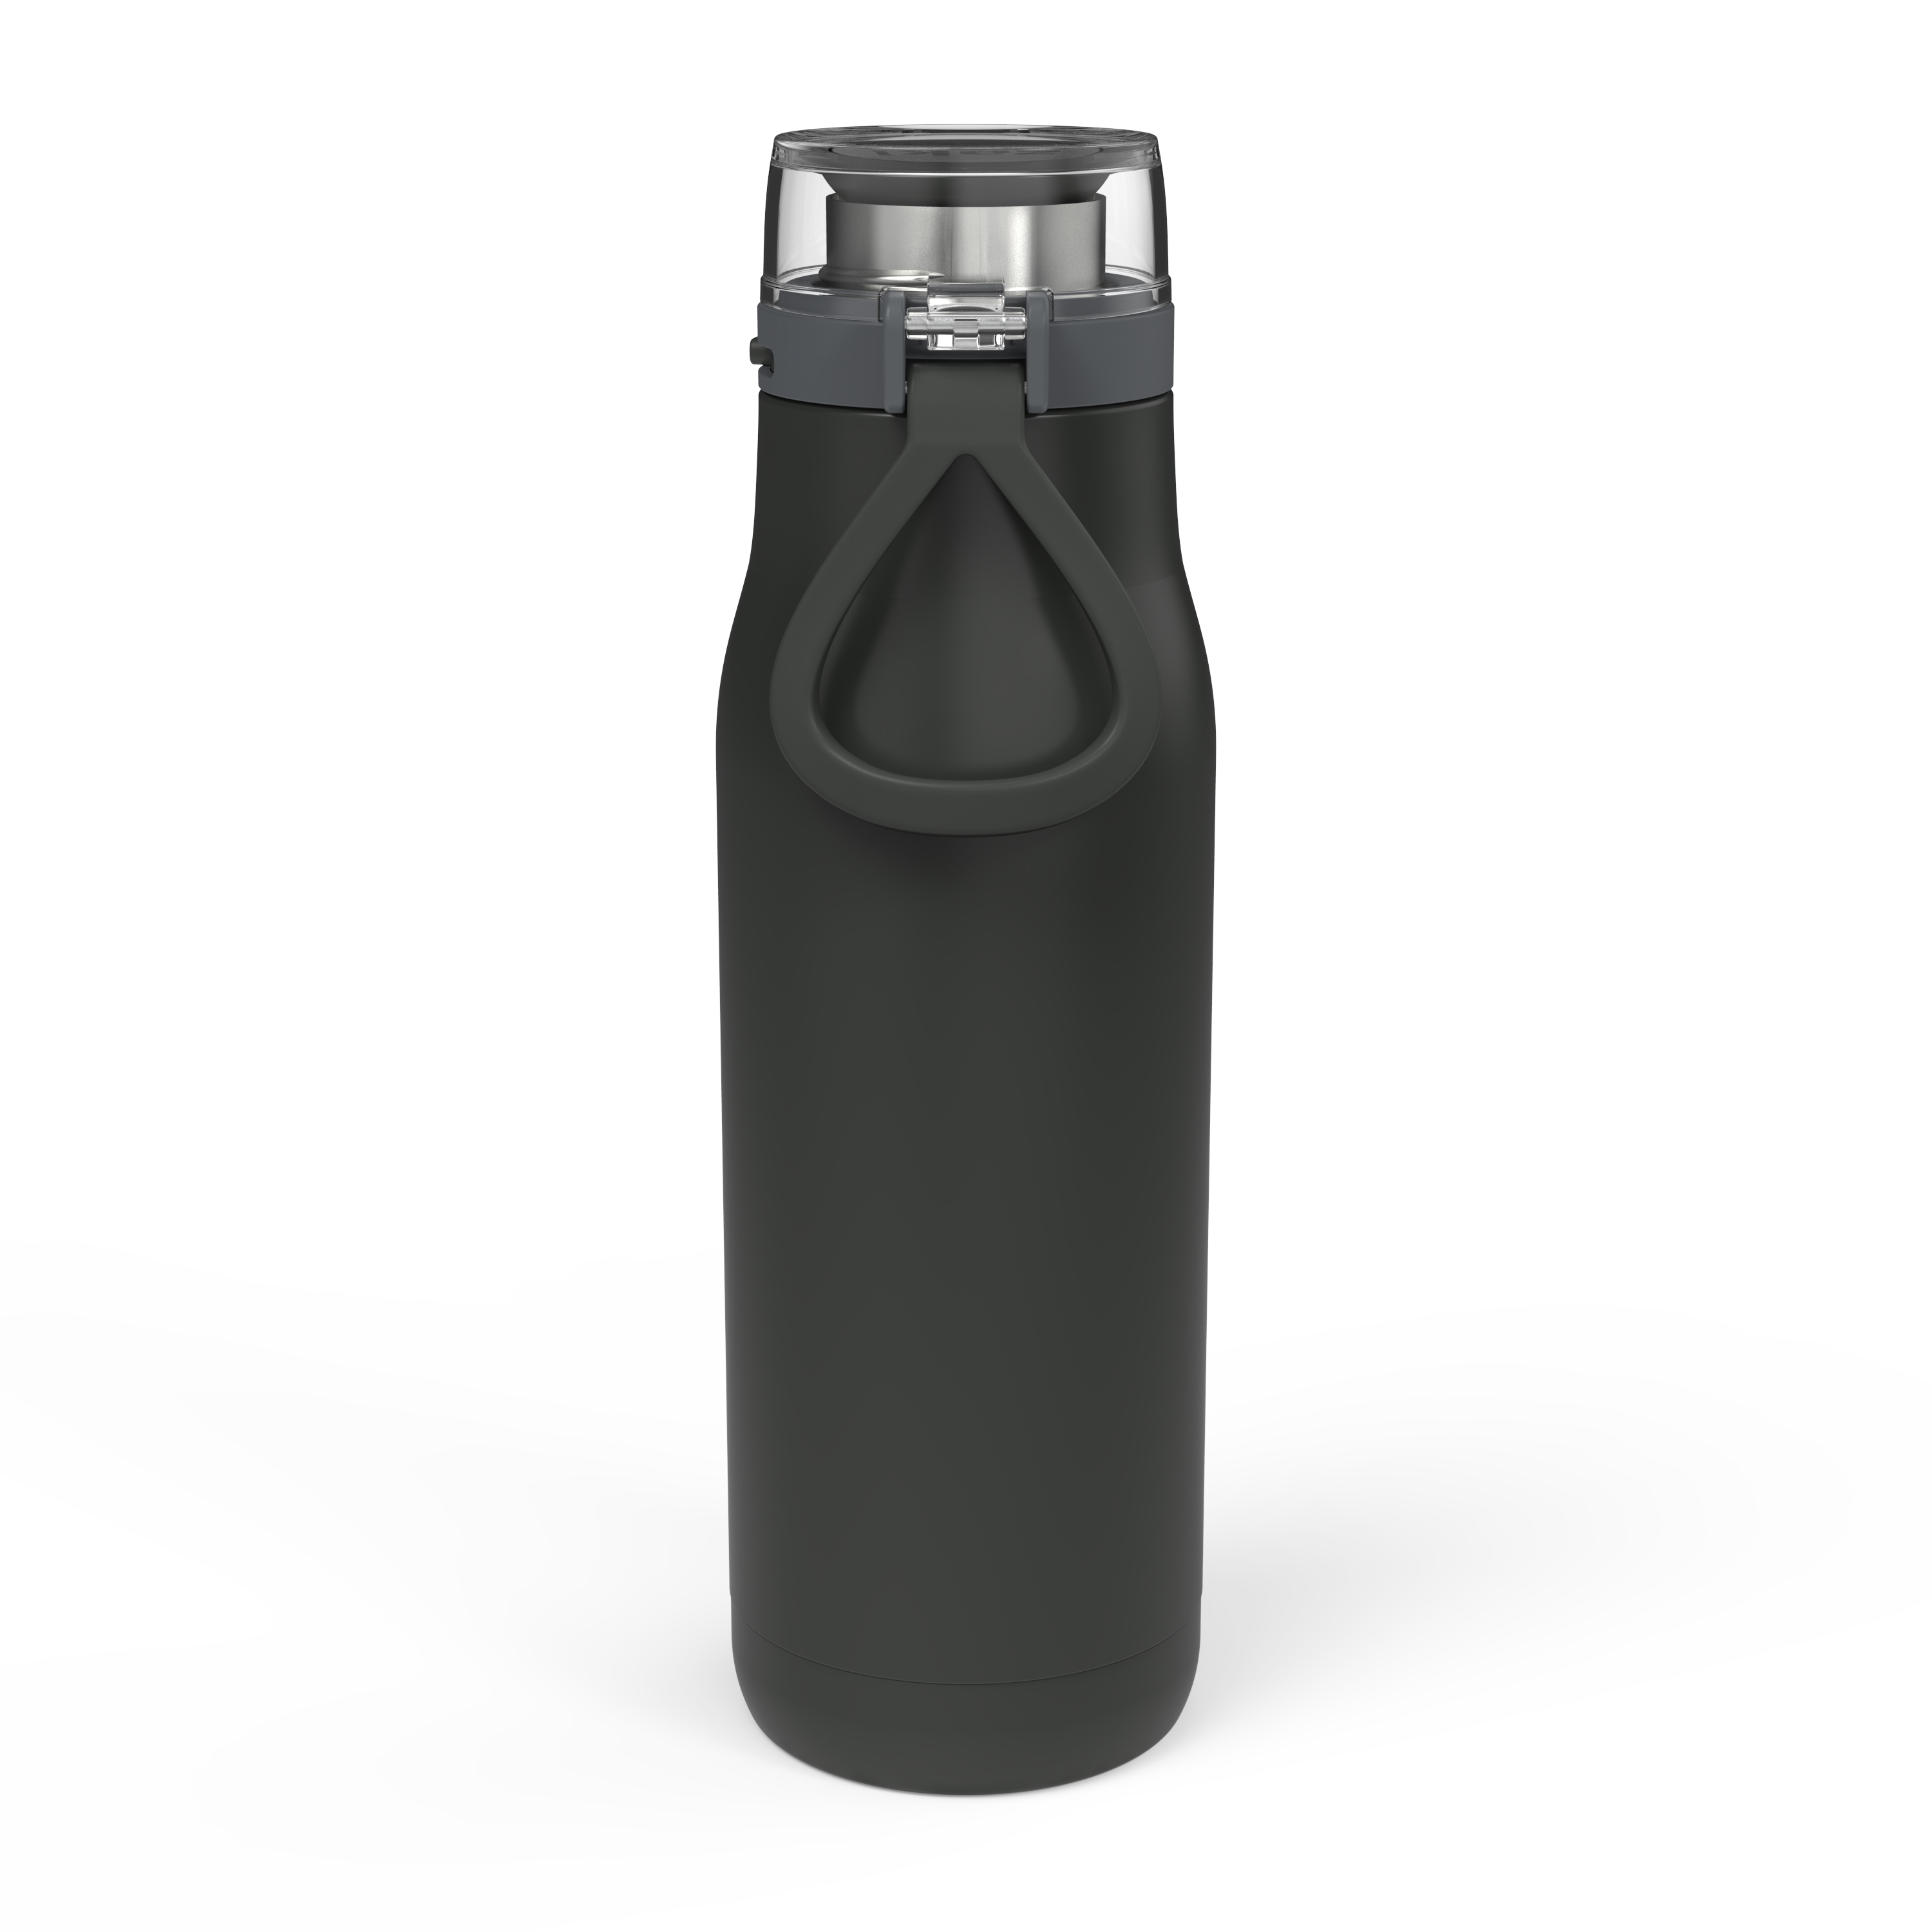 Kiona 20 ounce Vacuum Insulated Stainless Steel Tumbler, Charcoal slideshow image 3